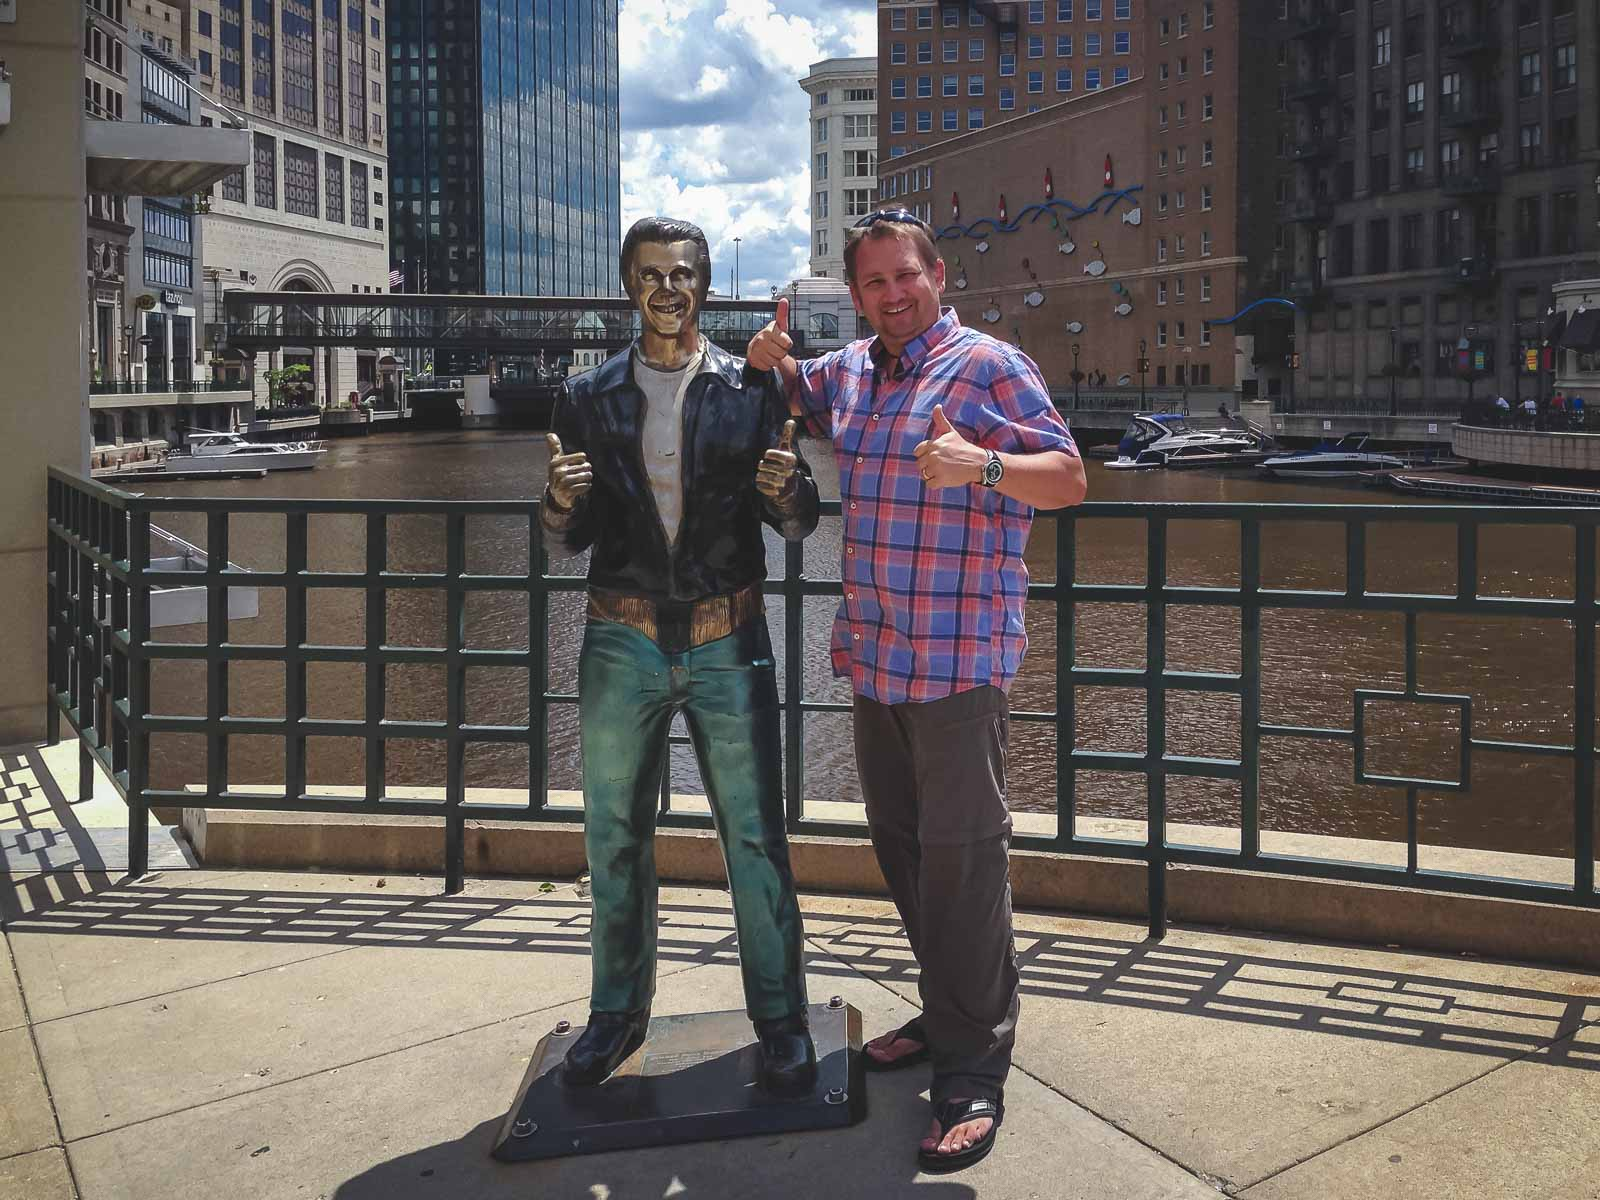 The Fonz statue in Milwaukee